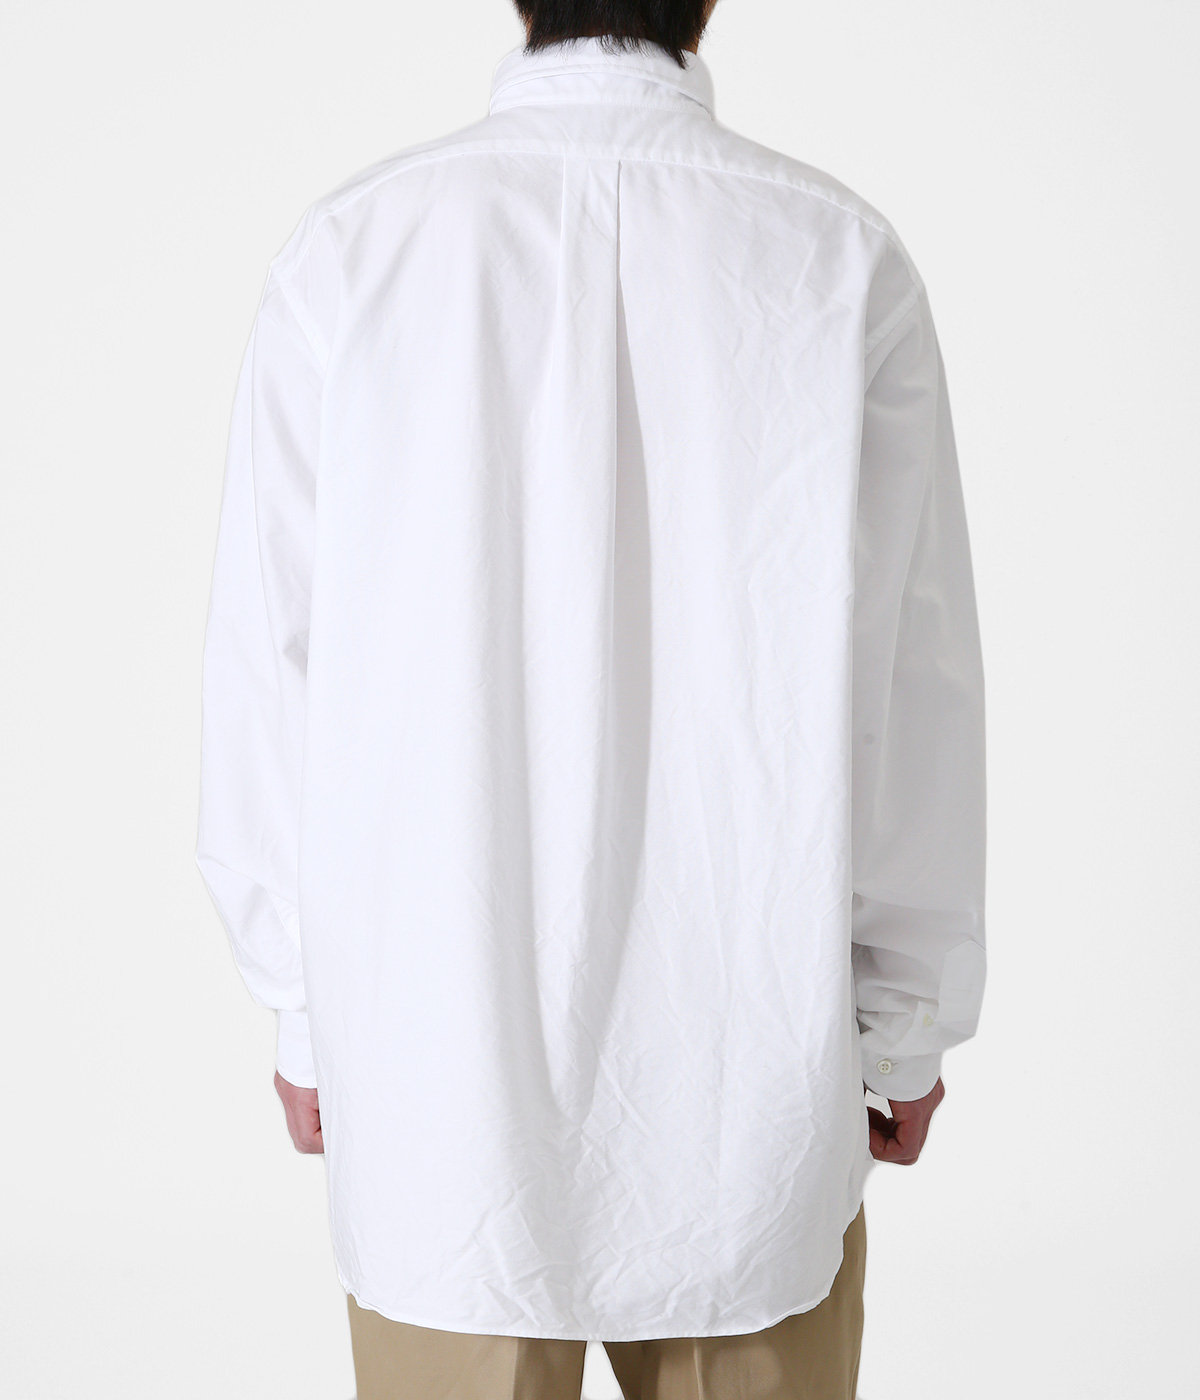 【ONLY ARK】別注 L/S OX B.D shirts